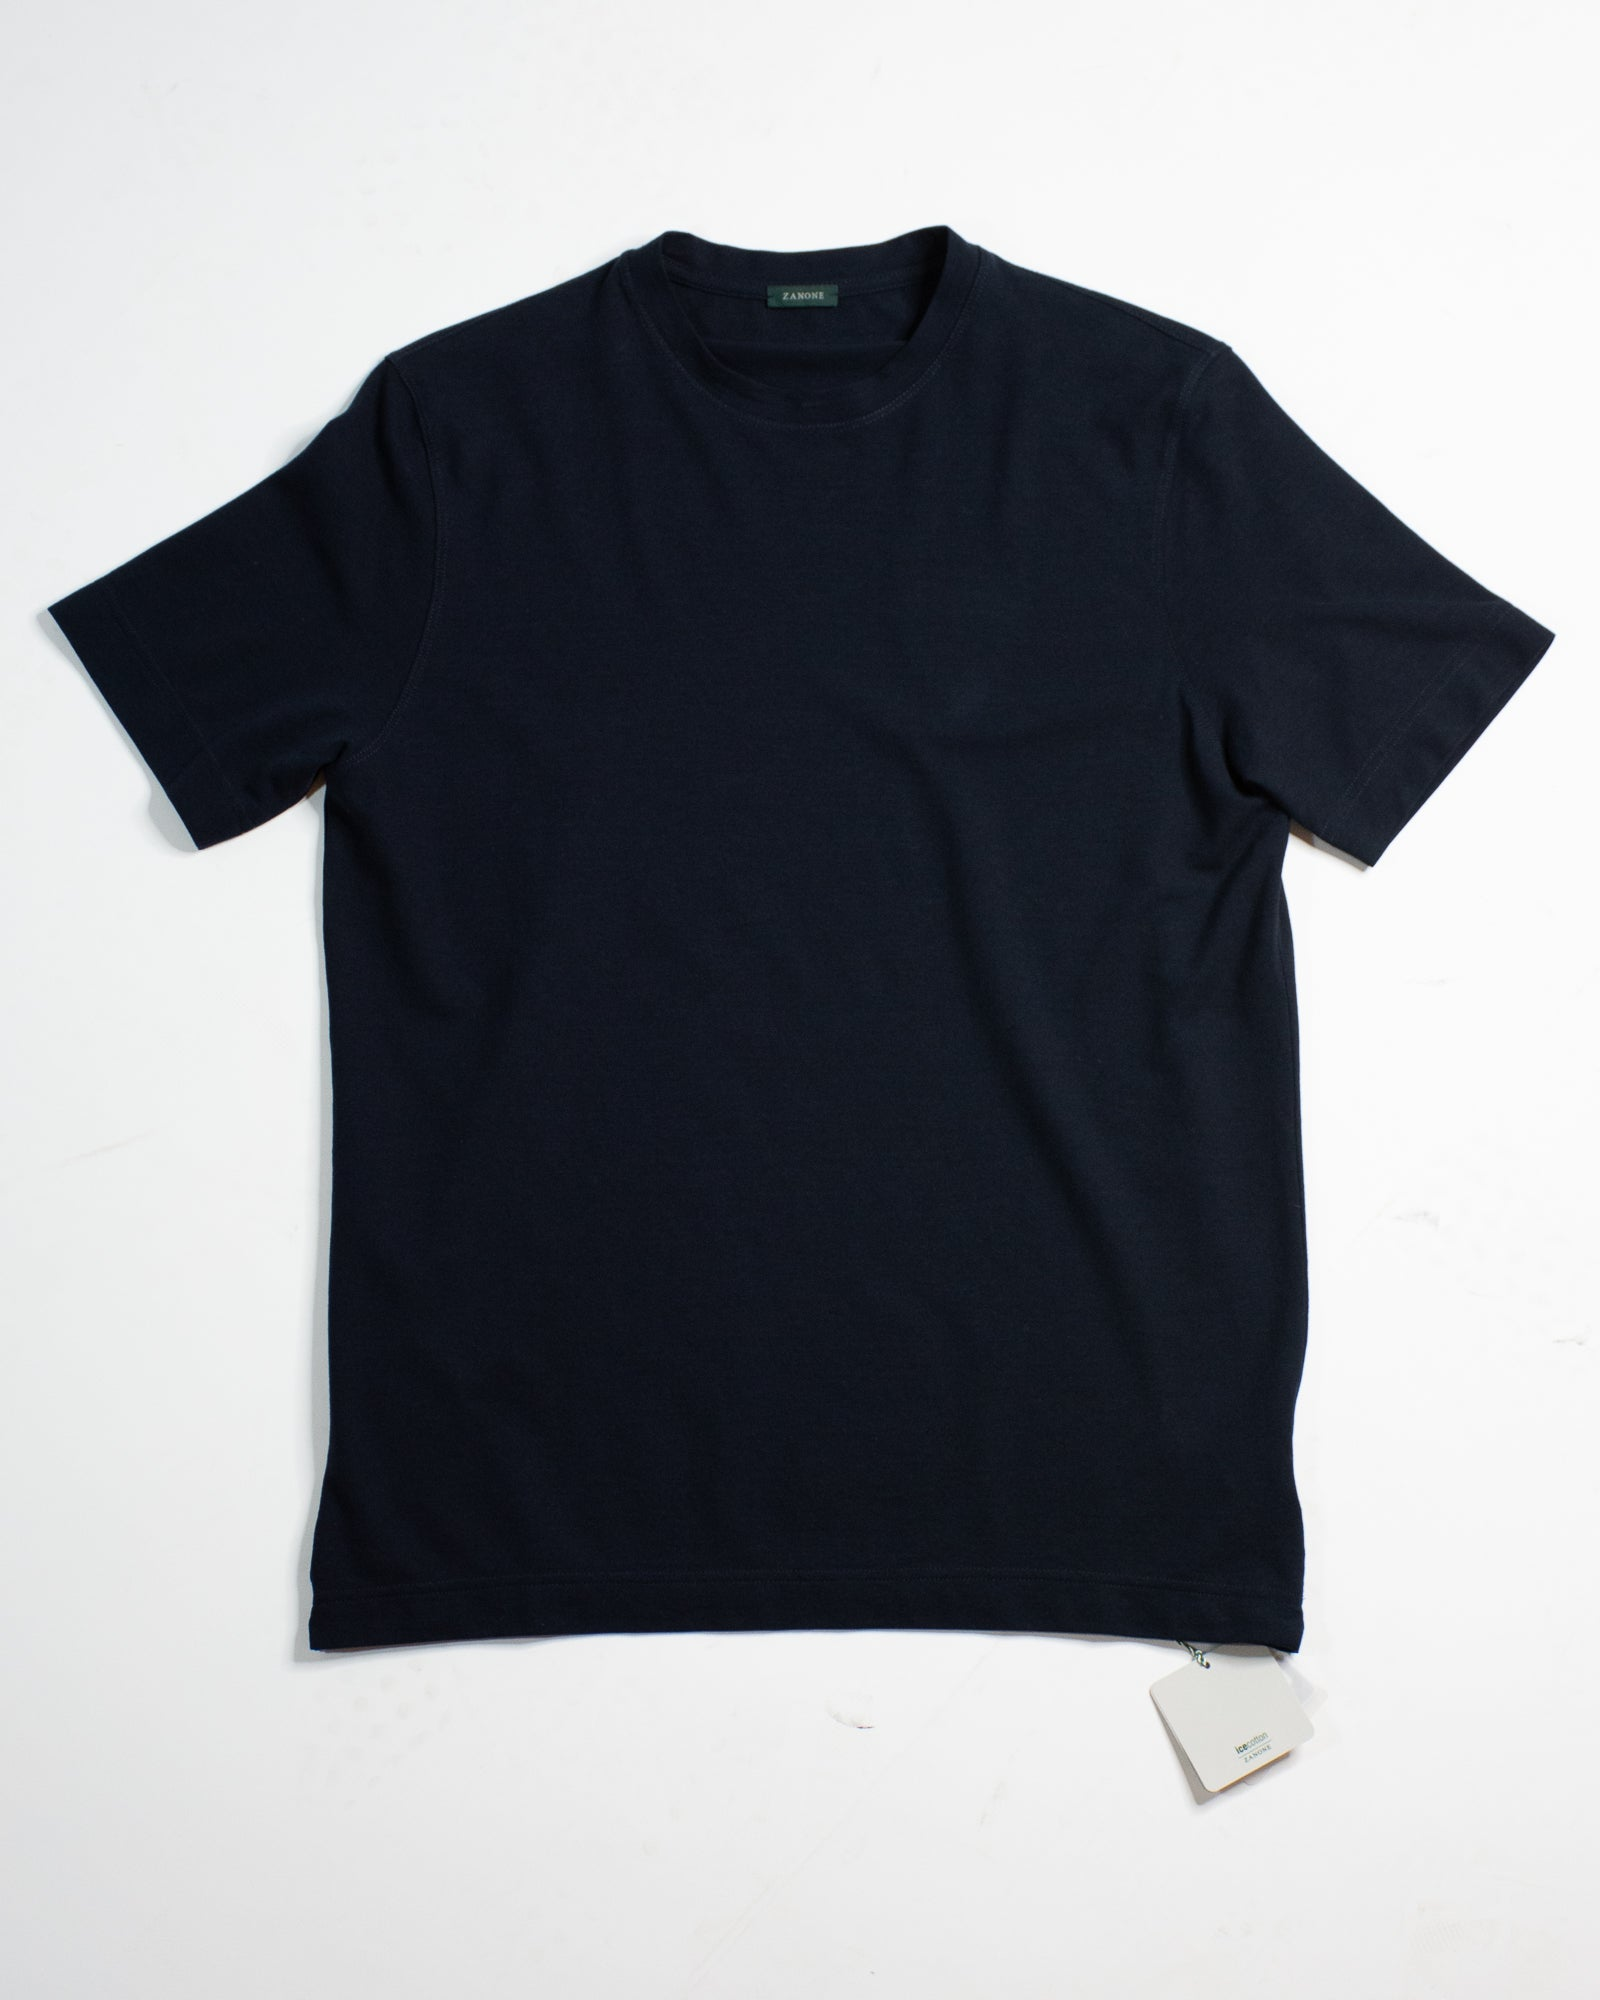 SLOWEAR Zanone Ice Cotton Crew Neck Tee